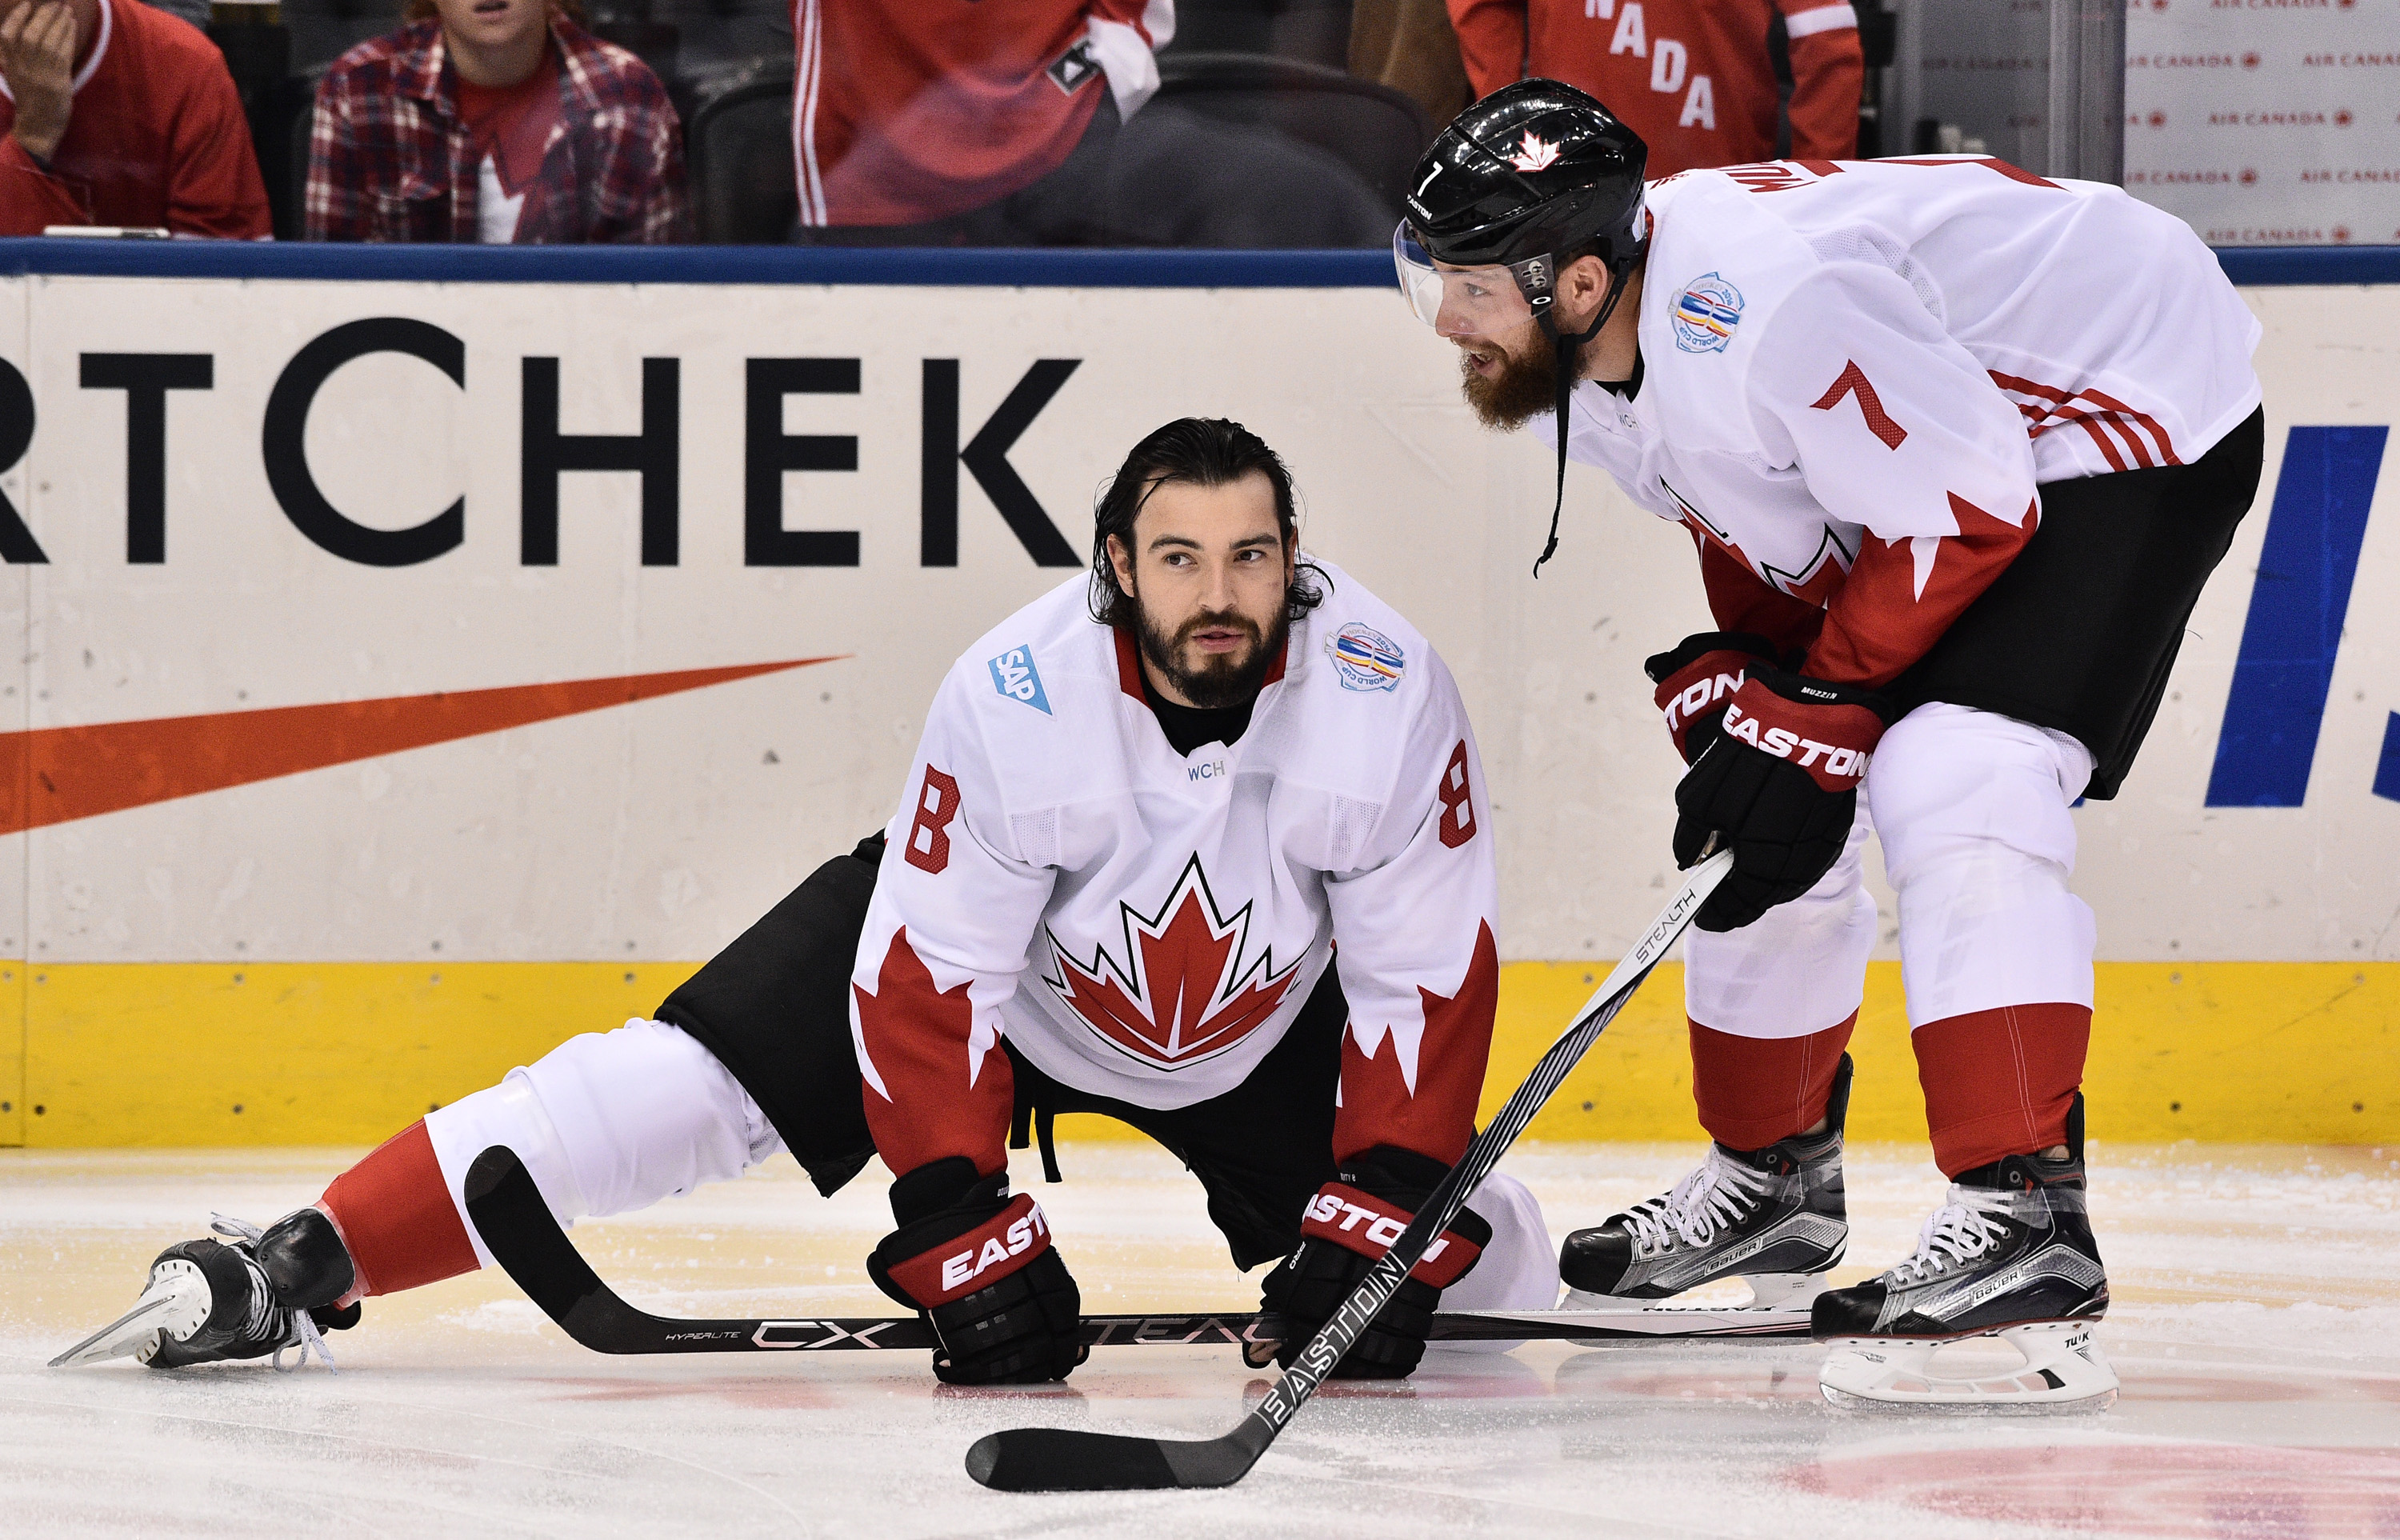 World Cup of Hockey 2016 Final - Game Two - Europe v Canada